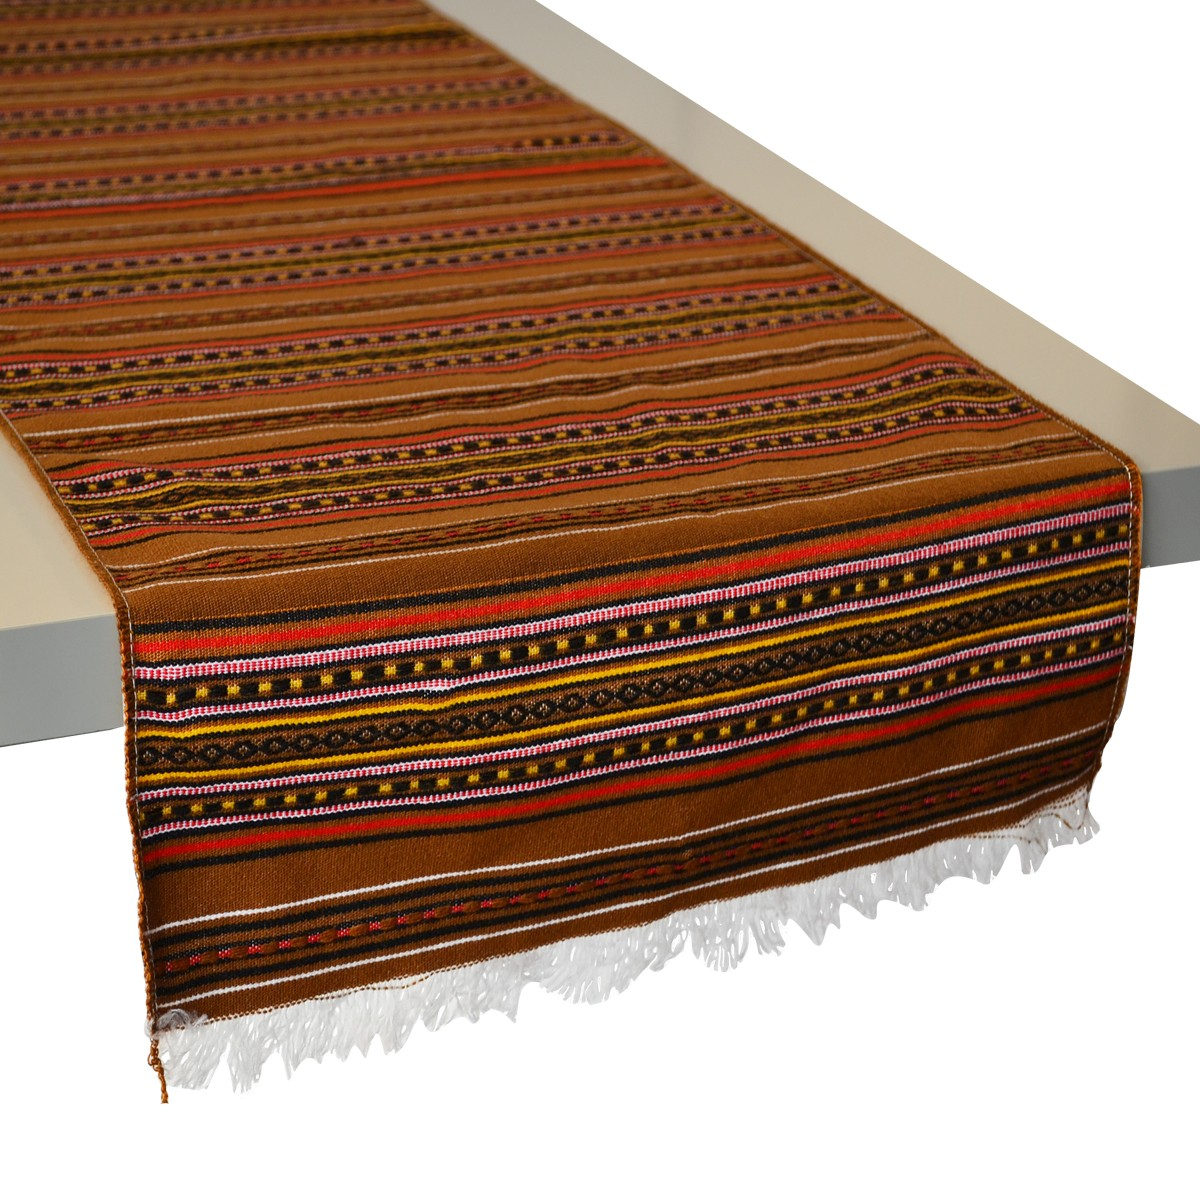 Kythnos Jacquard Table Runner, Brown, S